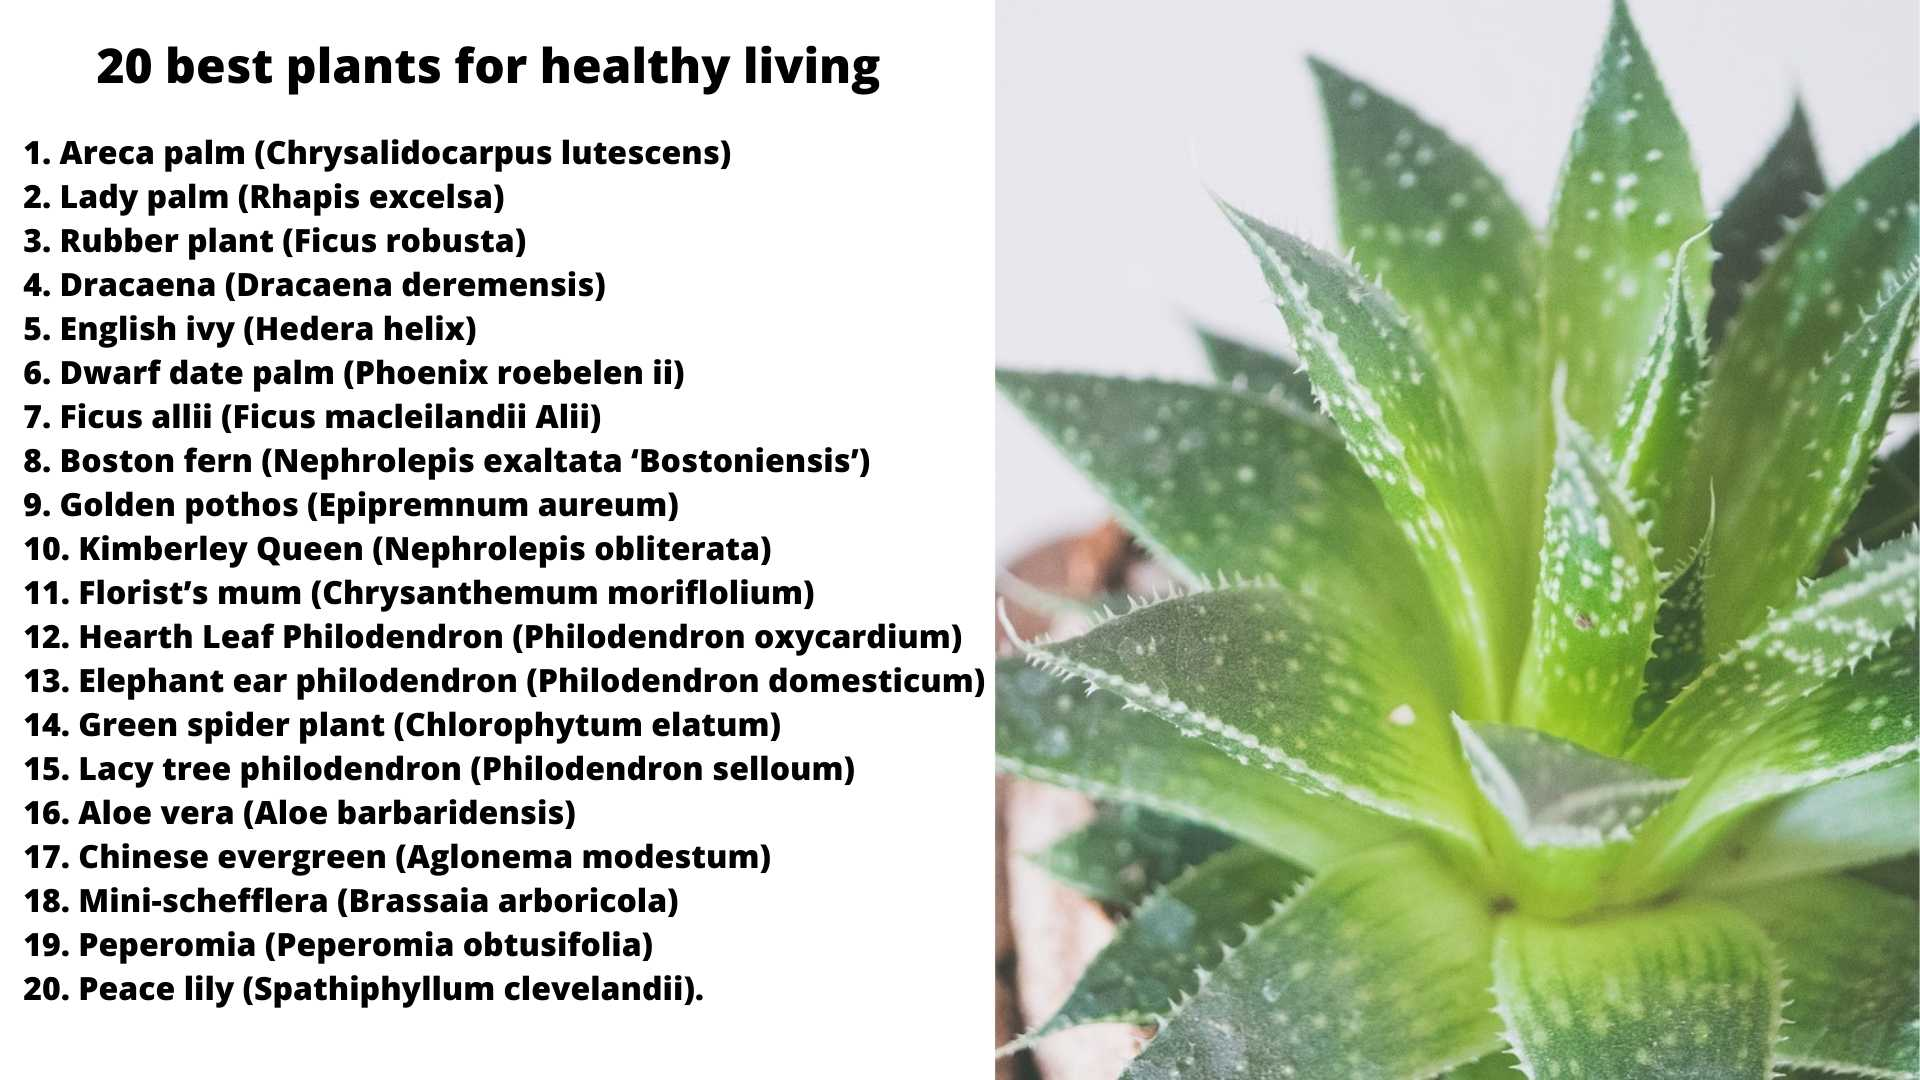 20 best plants for healthy living